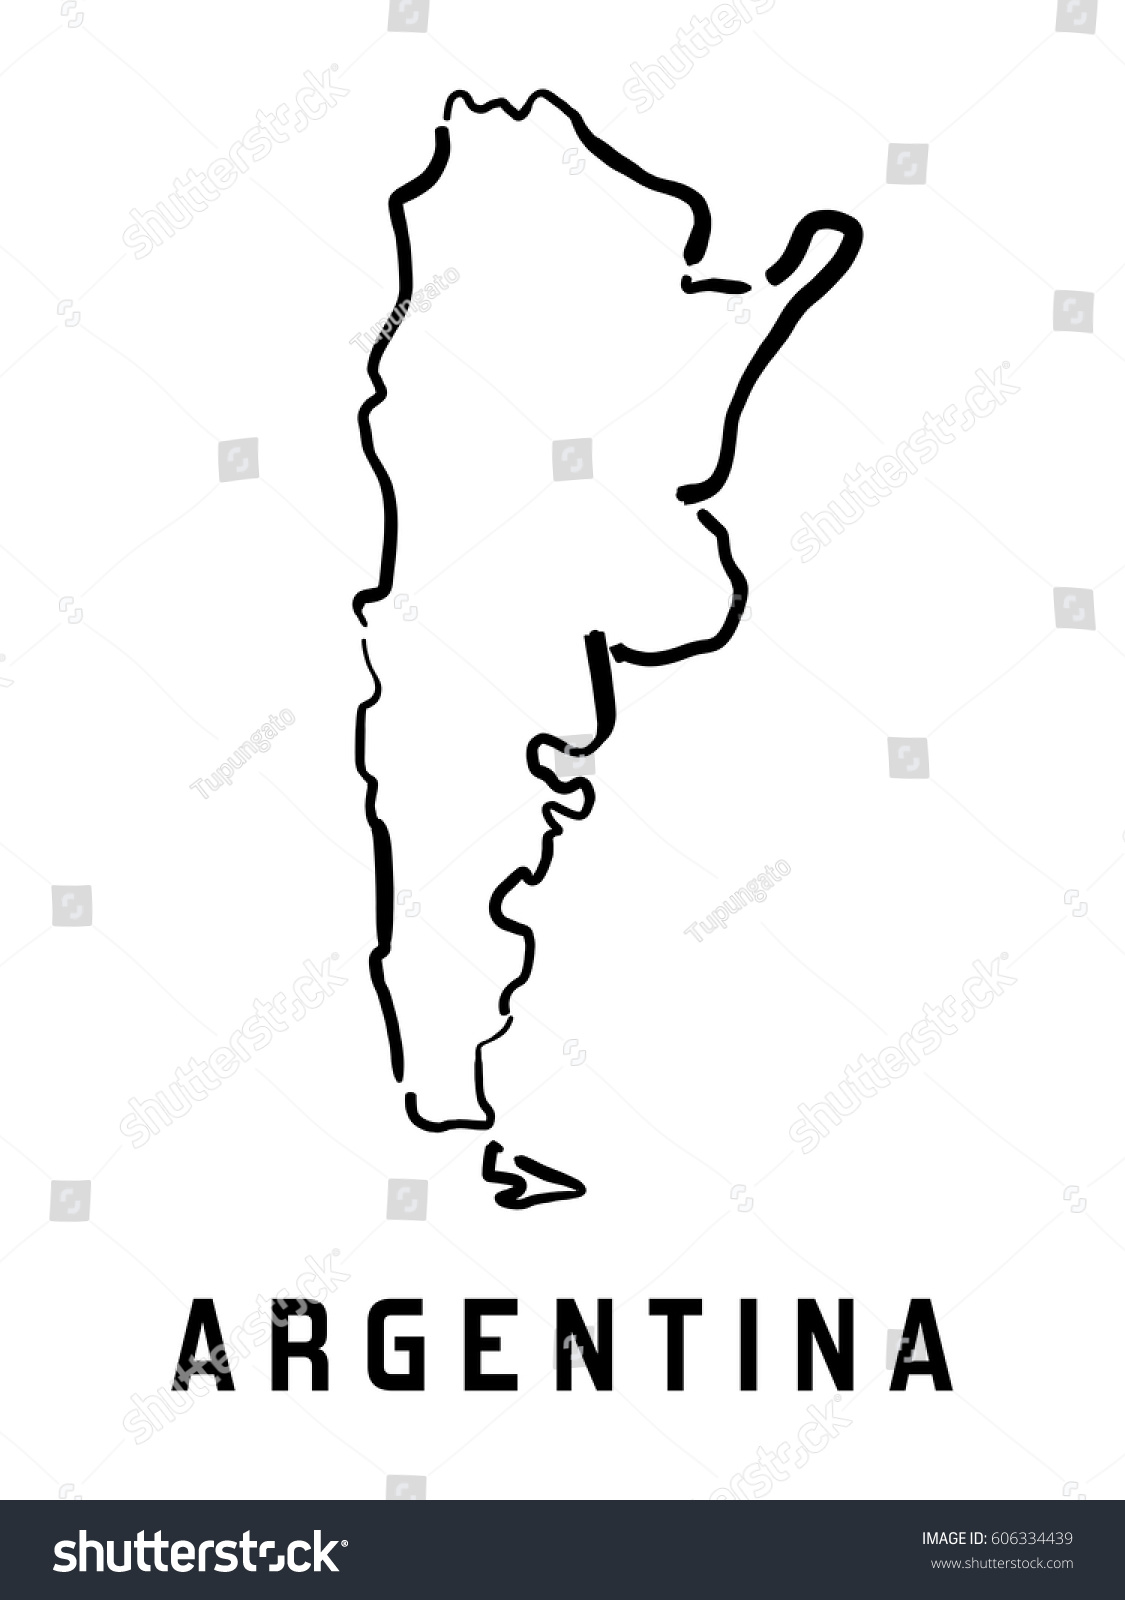 Argentina Map Outline Smooth Simplified Country Stock Vector - Argentina map outline